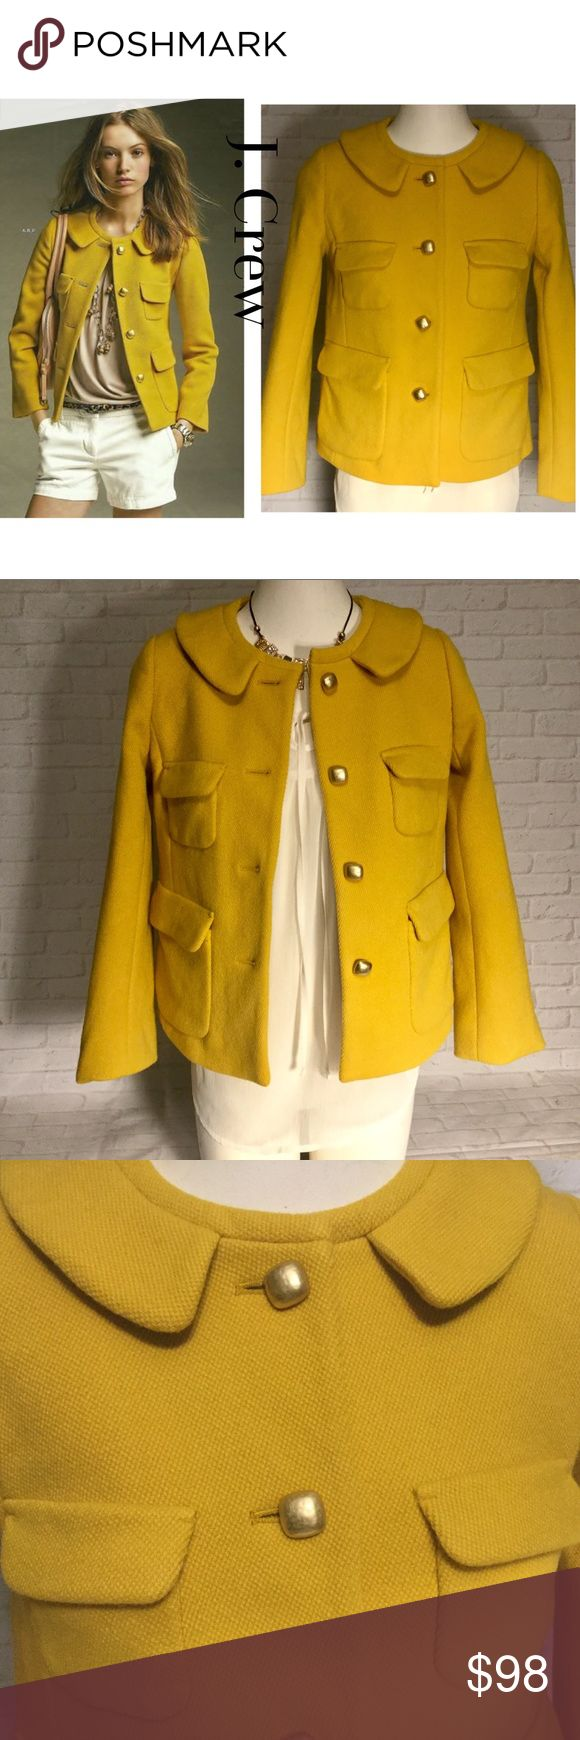 "J. Crew wool blazer jacket yellow women's 0 This is a women's J. Crew wool blazer.  This Is a women's size 0 with no rips, stains or discoloration and comes from a smoke free home.  Armpit to armpit measures approx. 17"" length measures approx. 20"".  Buy with confidence I am a Posh Ambassador, top rated seller, mentor and fast shipper.  Don't forget to bundle and save.  Thank you. J. Crew Jackets & Coats Blazers"